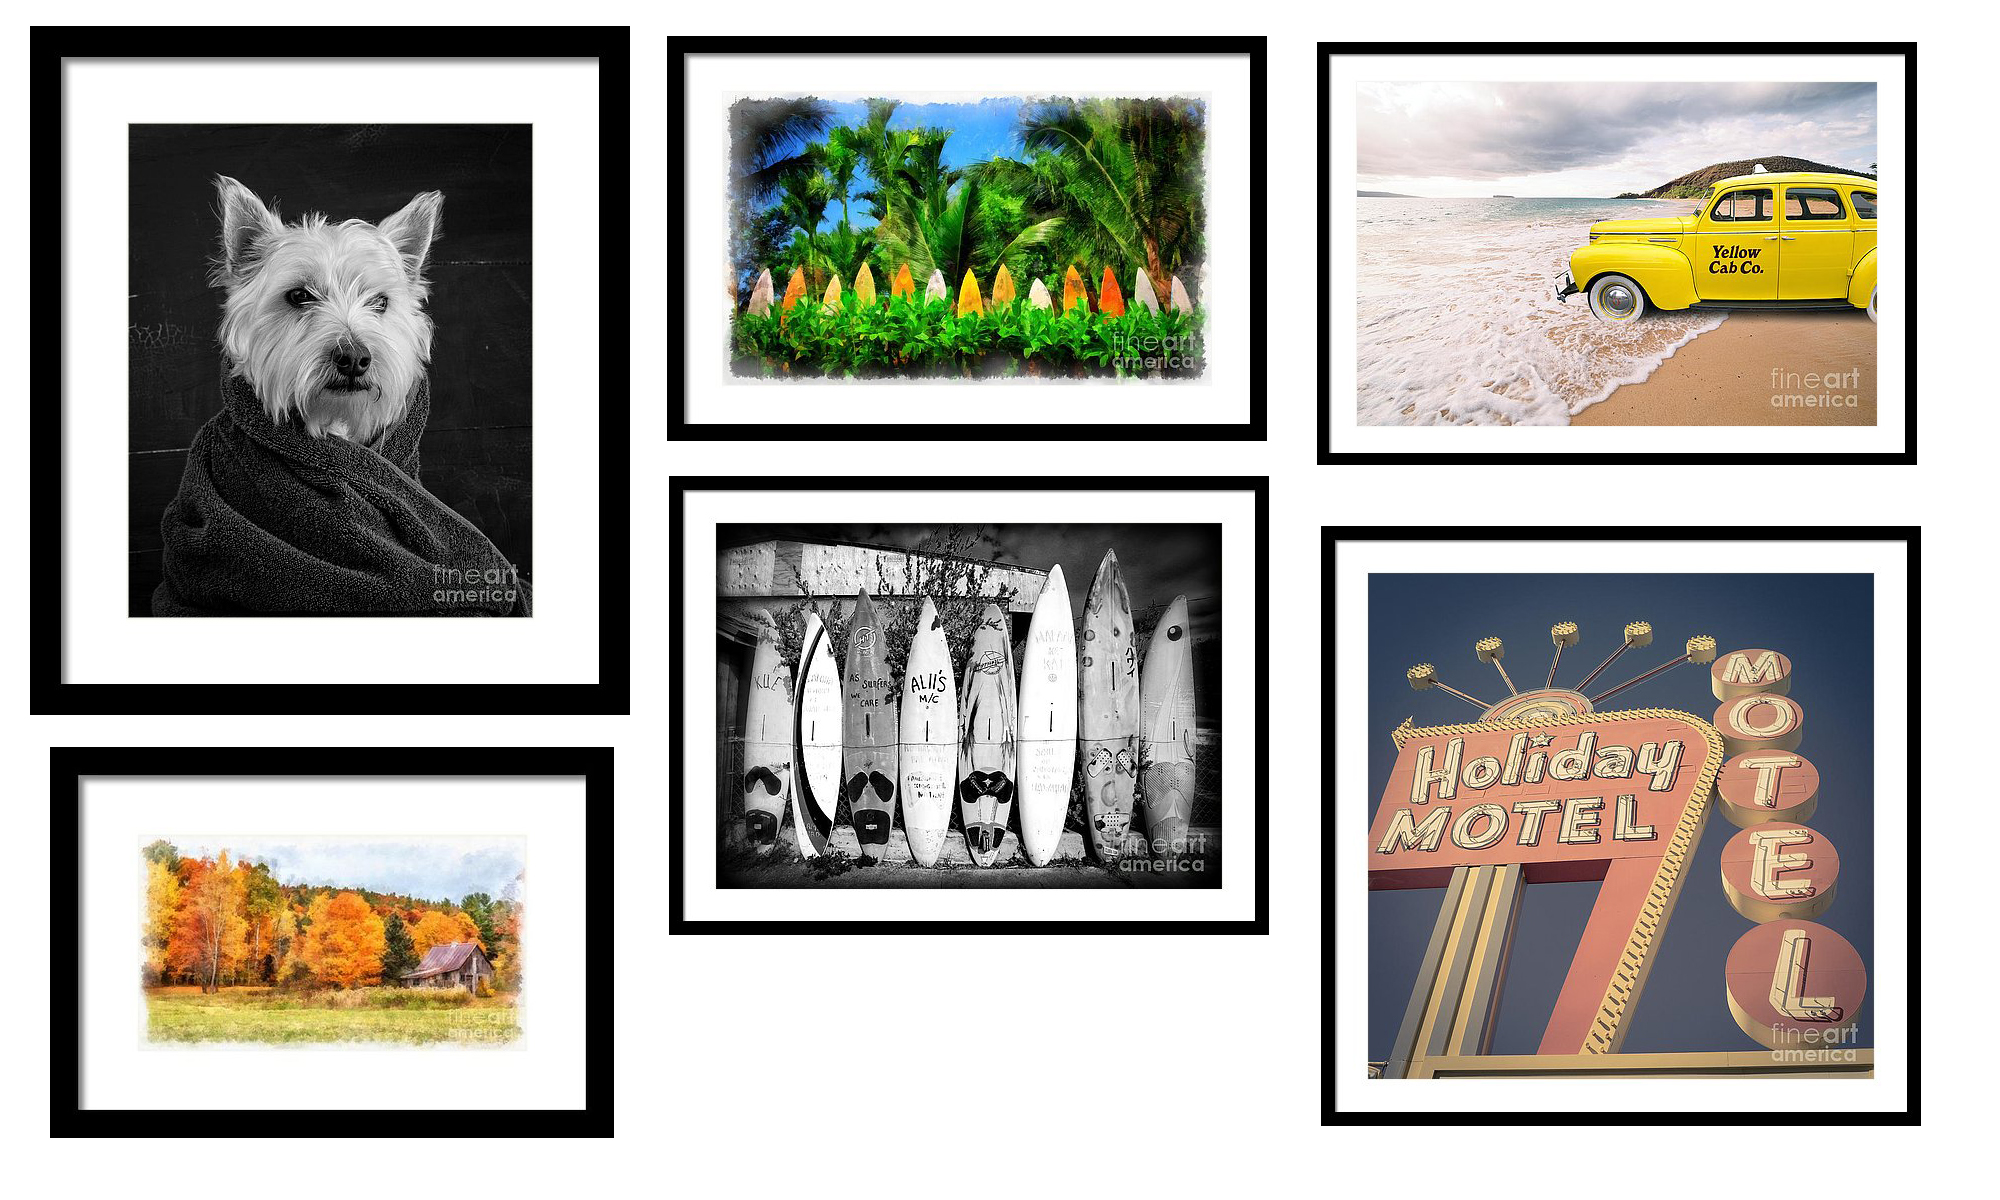 Buy Prints and Products